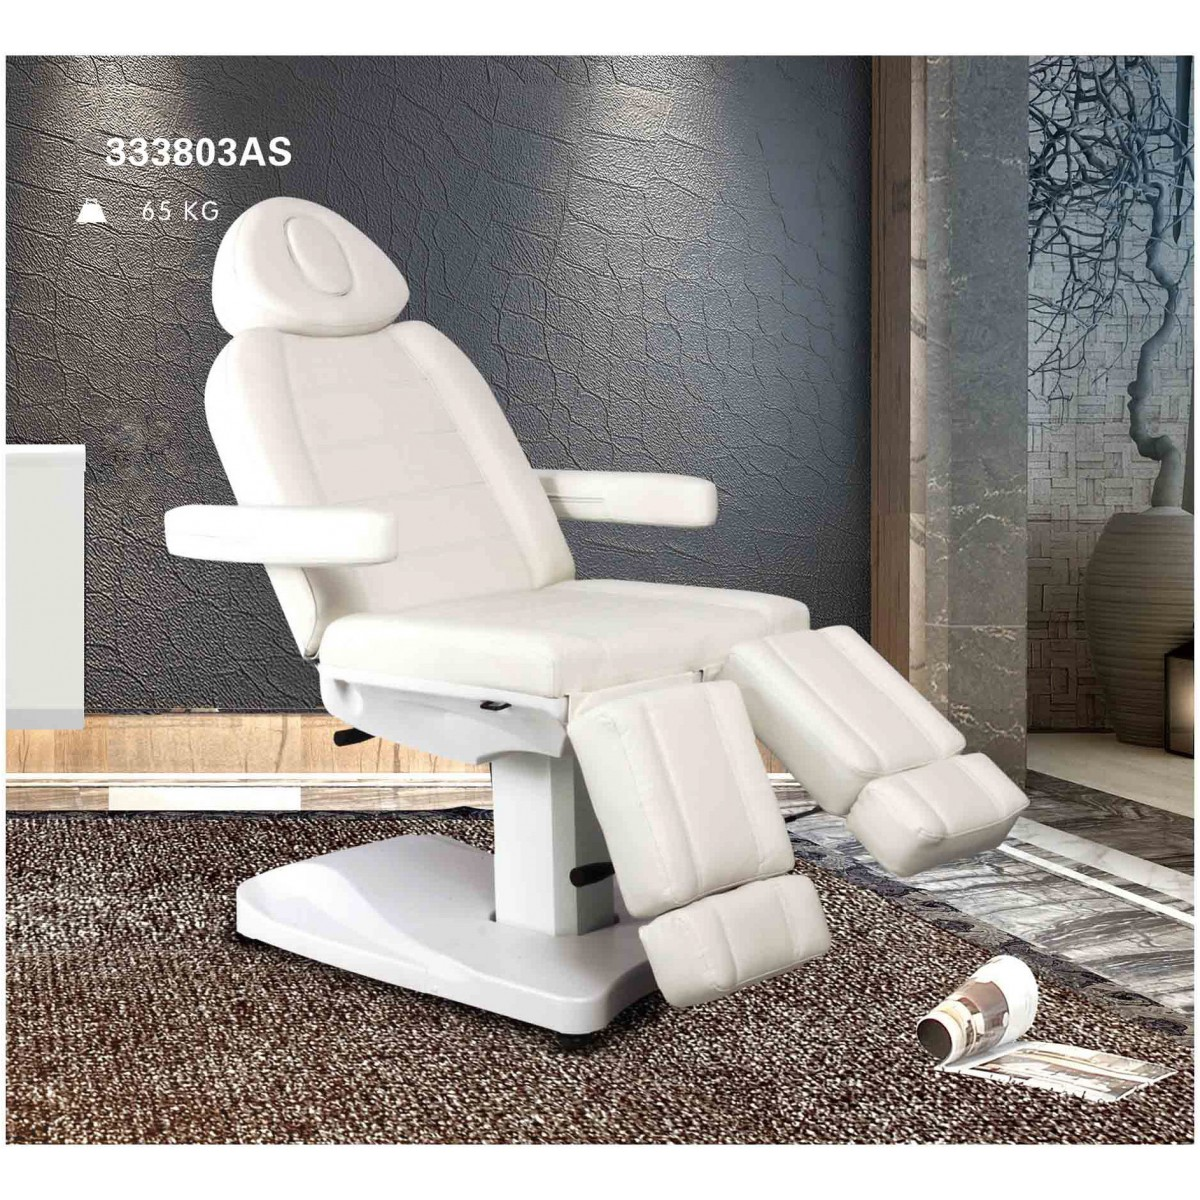 elegant spa bed for beauty salon cosmetic beauty bed massage bed with CE approved